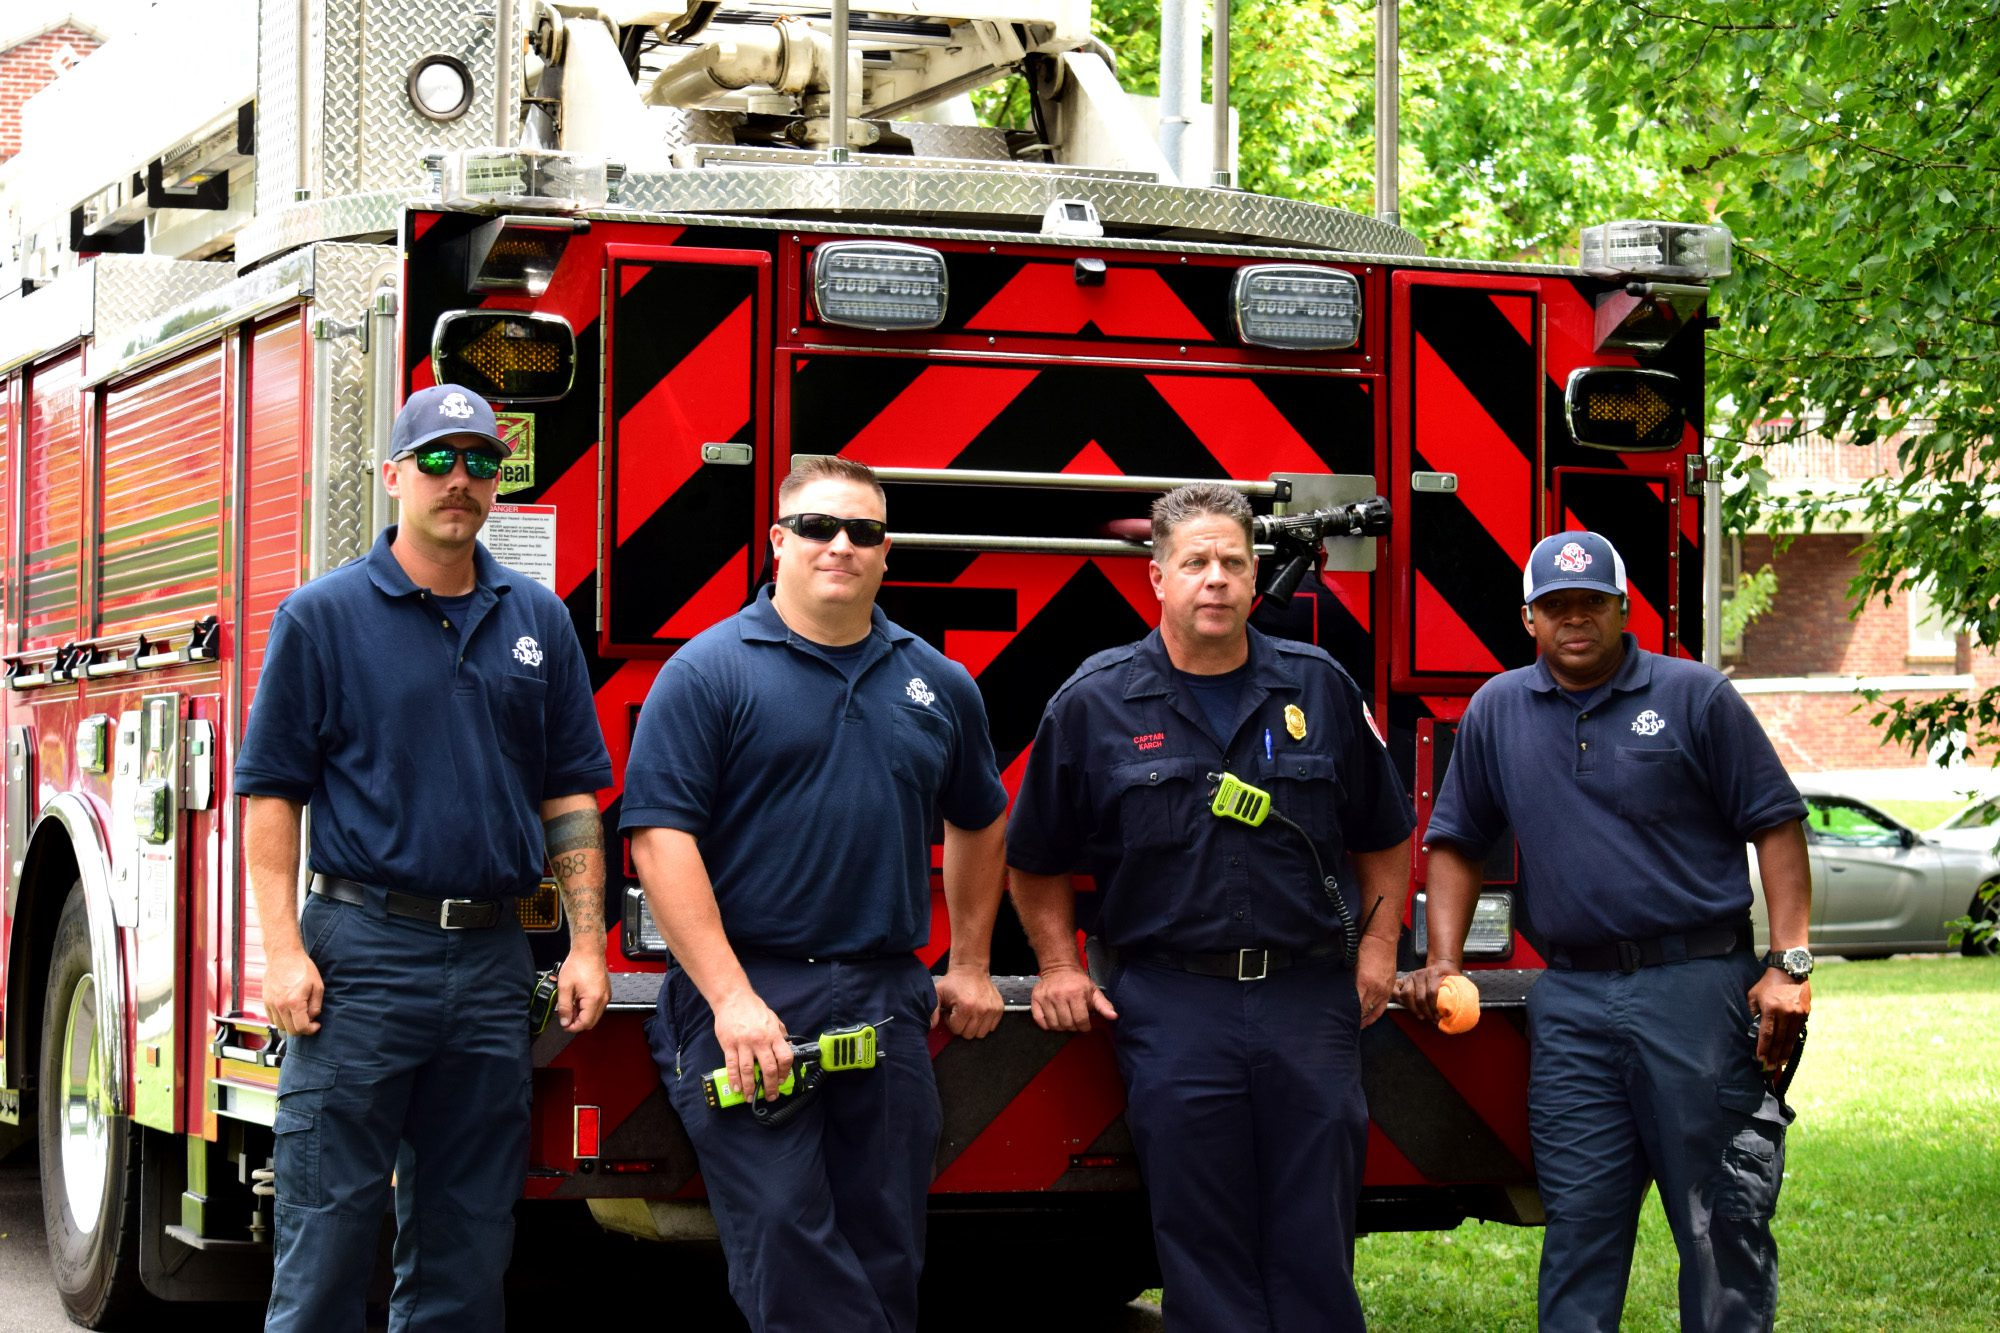 The St. Louis Fire Department at Marquette Community Day in Dutchtown, St. Louis, MO.